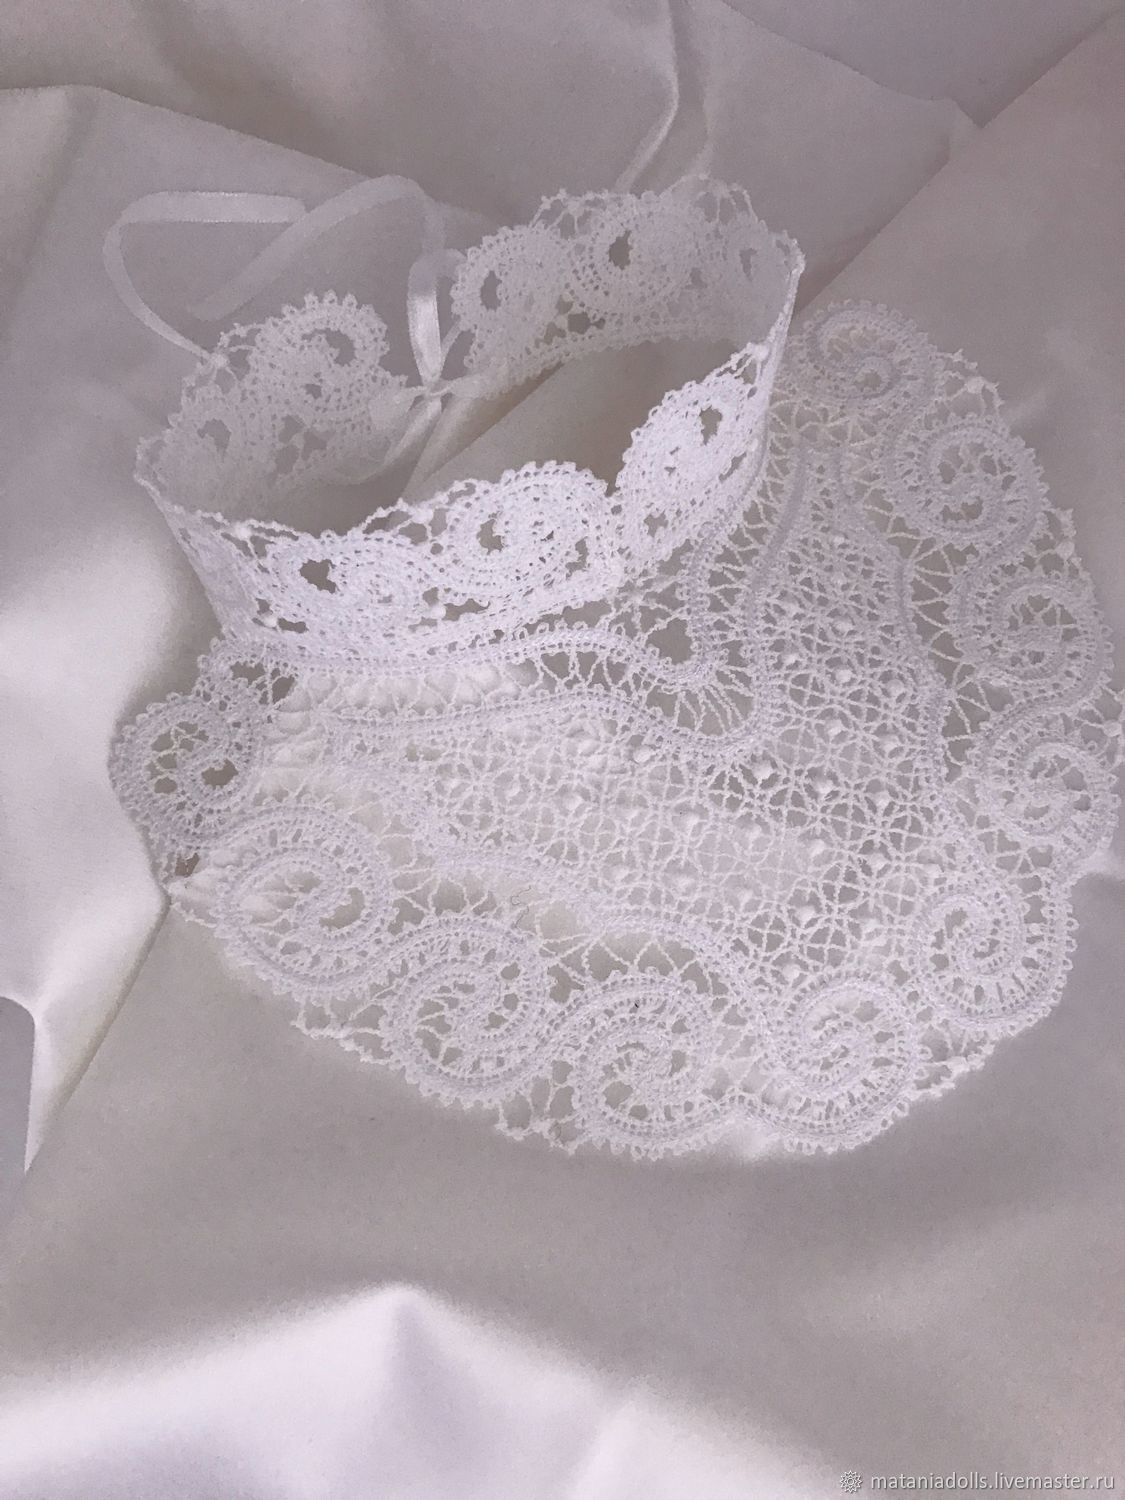 Lace white collar with stand 'Choker2', Collars, Liepaja,  Фото №1